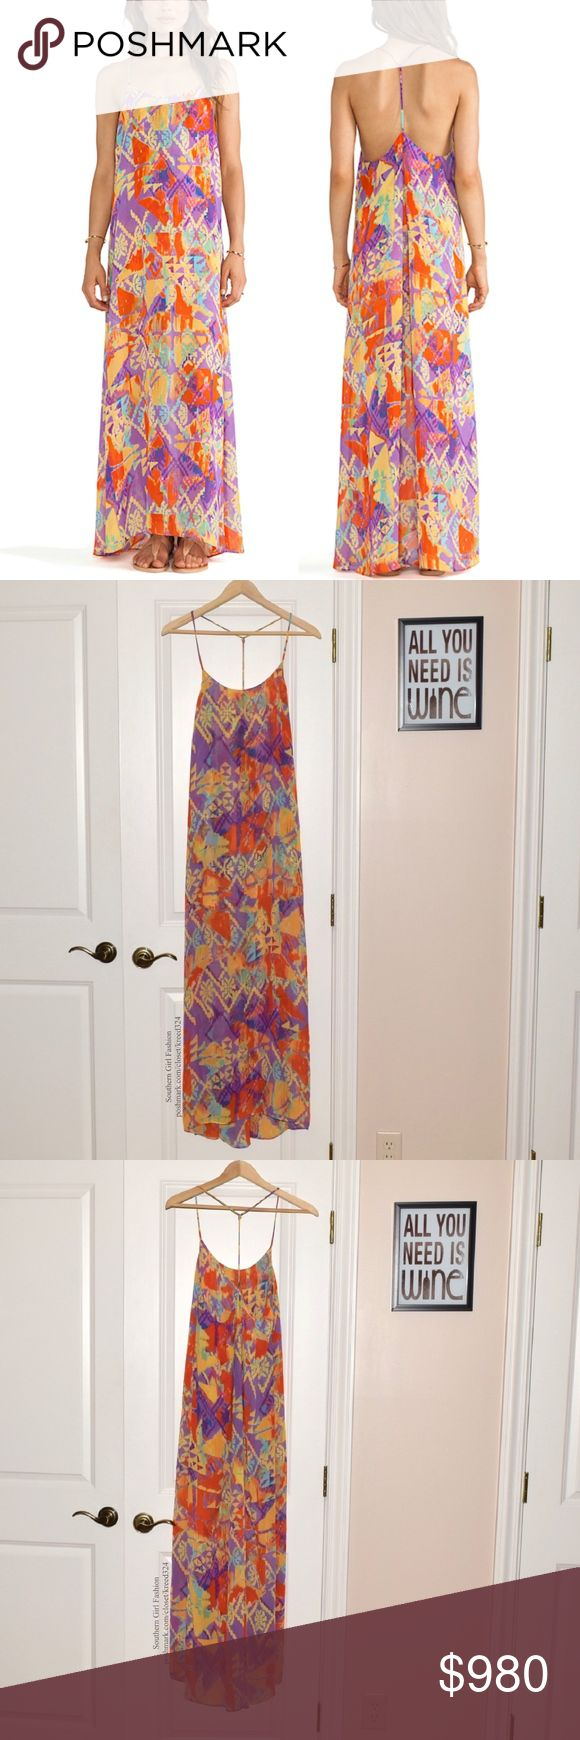 SHOW ME YOUR MUMU Draped Dress Intricate Long Gown Size Medium. Brand New Without Tags.  • Beautiful women's maxi dress featuring lightweight chiffon fabric & plunging v-neckline. • Partial open back includes matching t-style straps & gathered fabric accents. • Multicolor printed dakota fanny pack design throughout. • Vibrant shades of yellow, orange, green, blue & purple. • High-low hemline drapes effortlessly. • Swingy & unlined.  # Vacation Bohemian  • Same-Business-Day Shipping (10am…